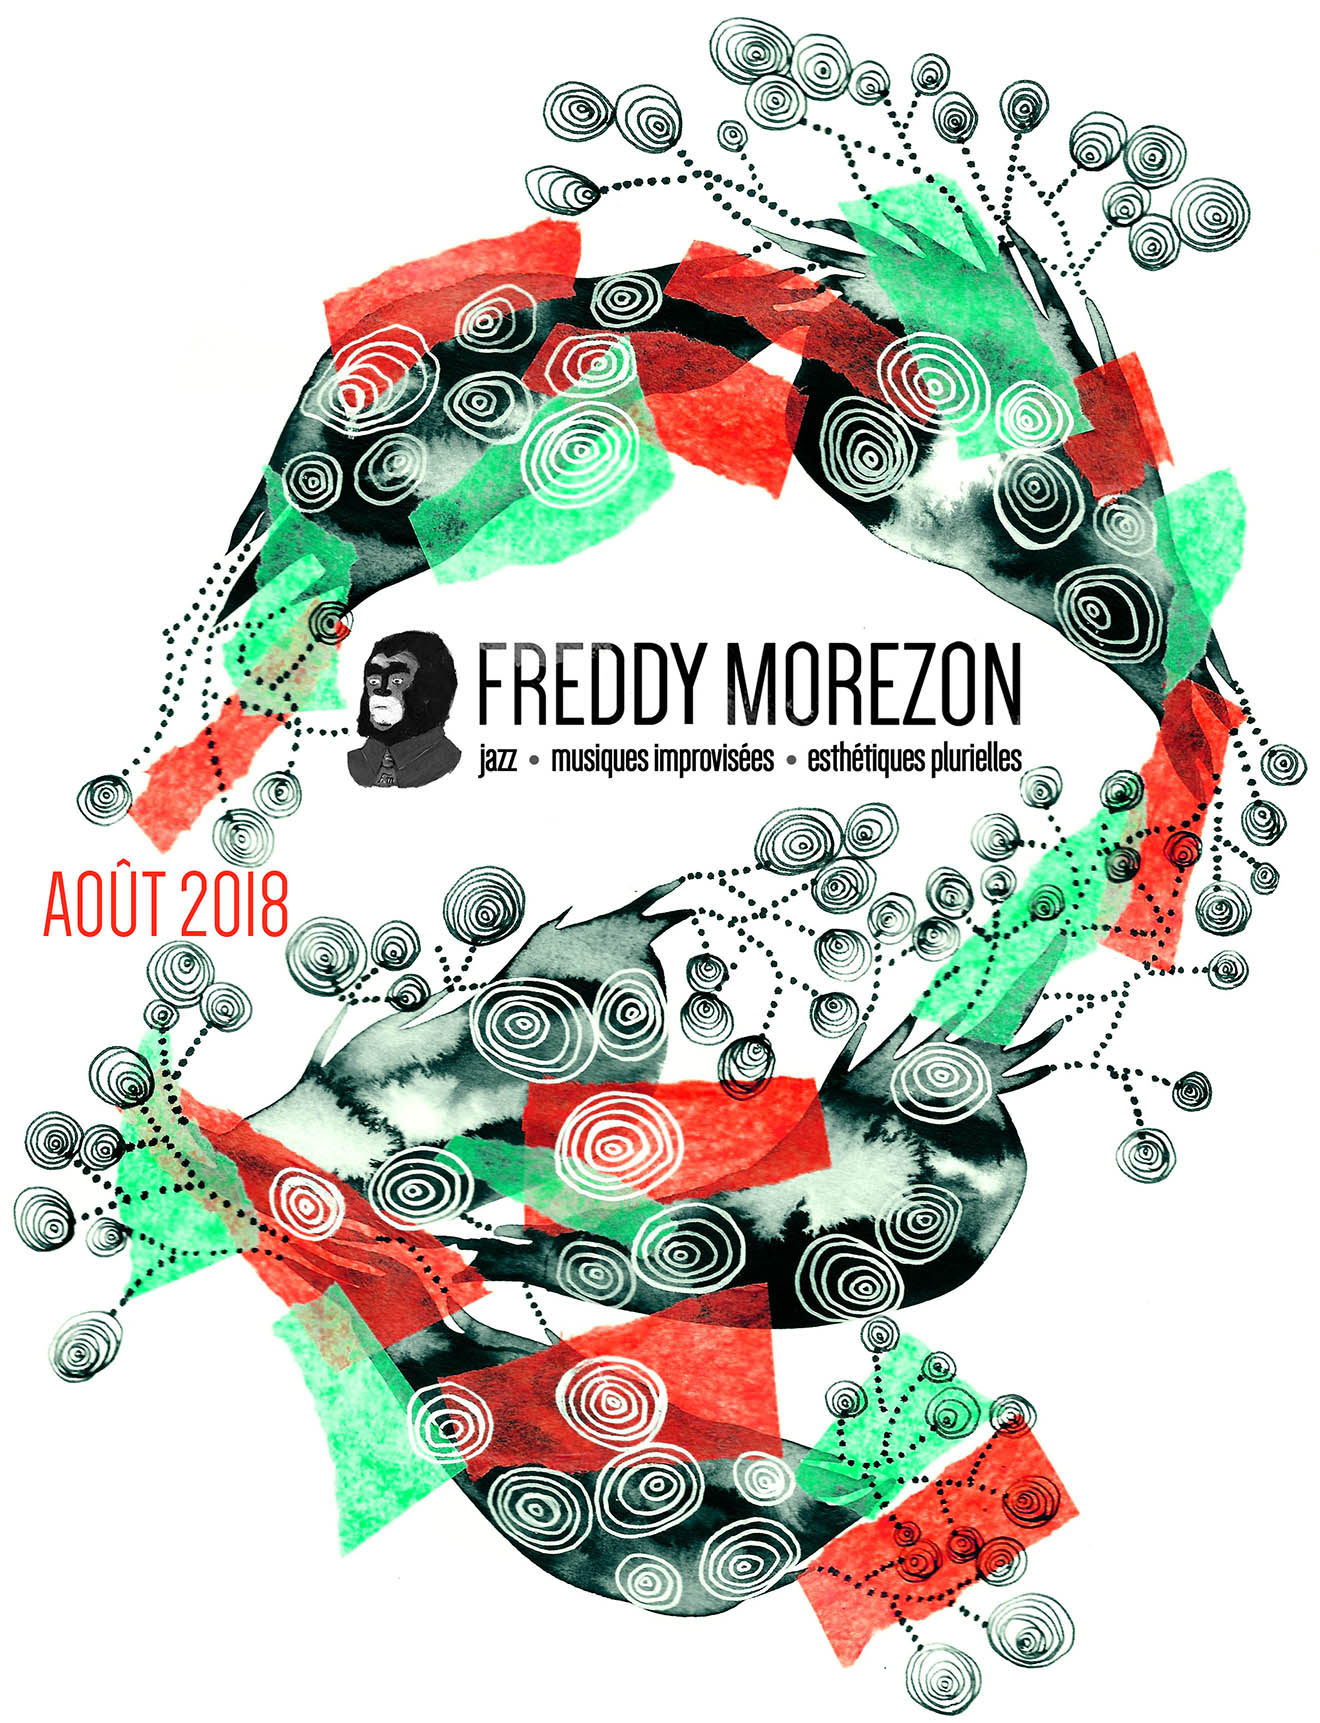 Freddy Morezon - Newsletter aout 2018